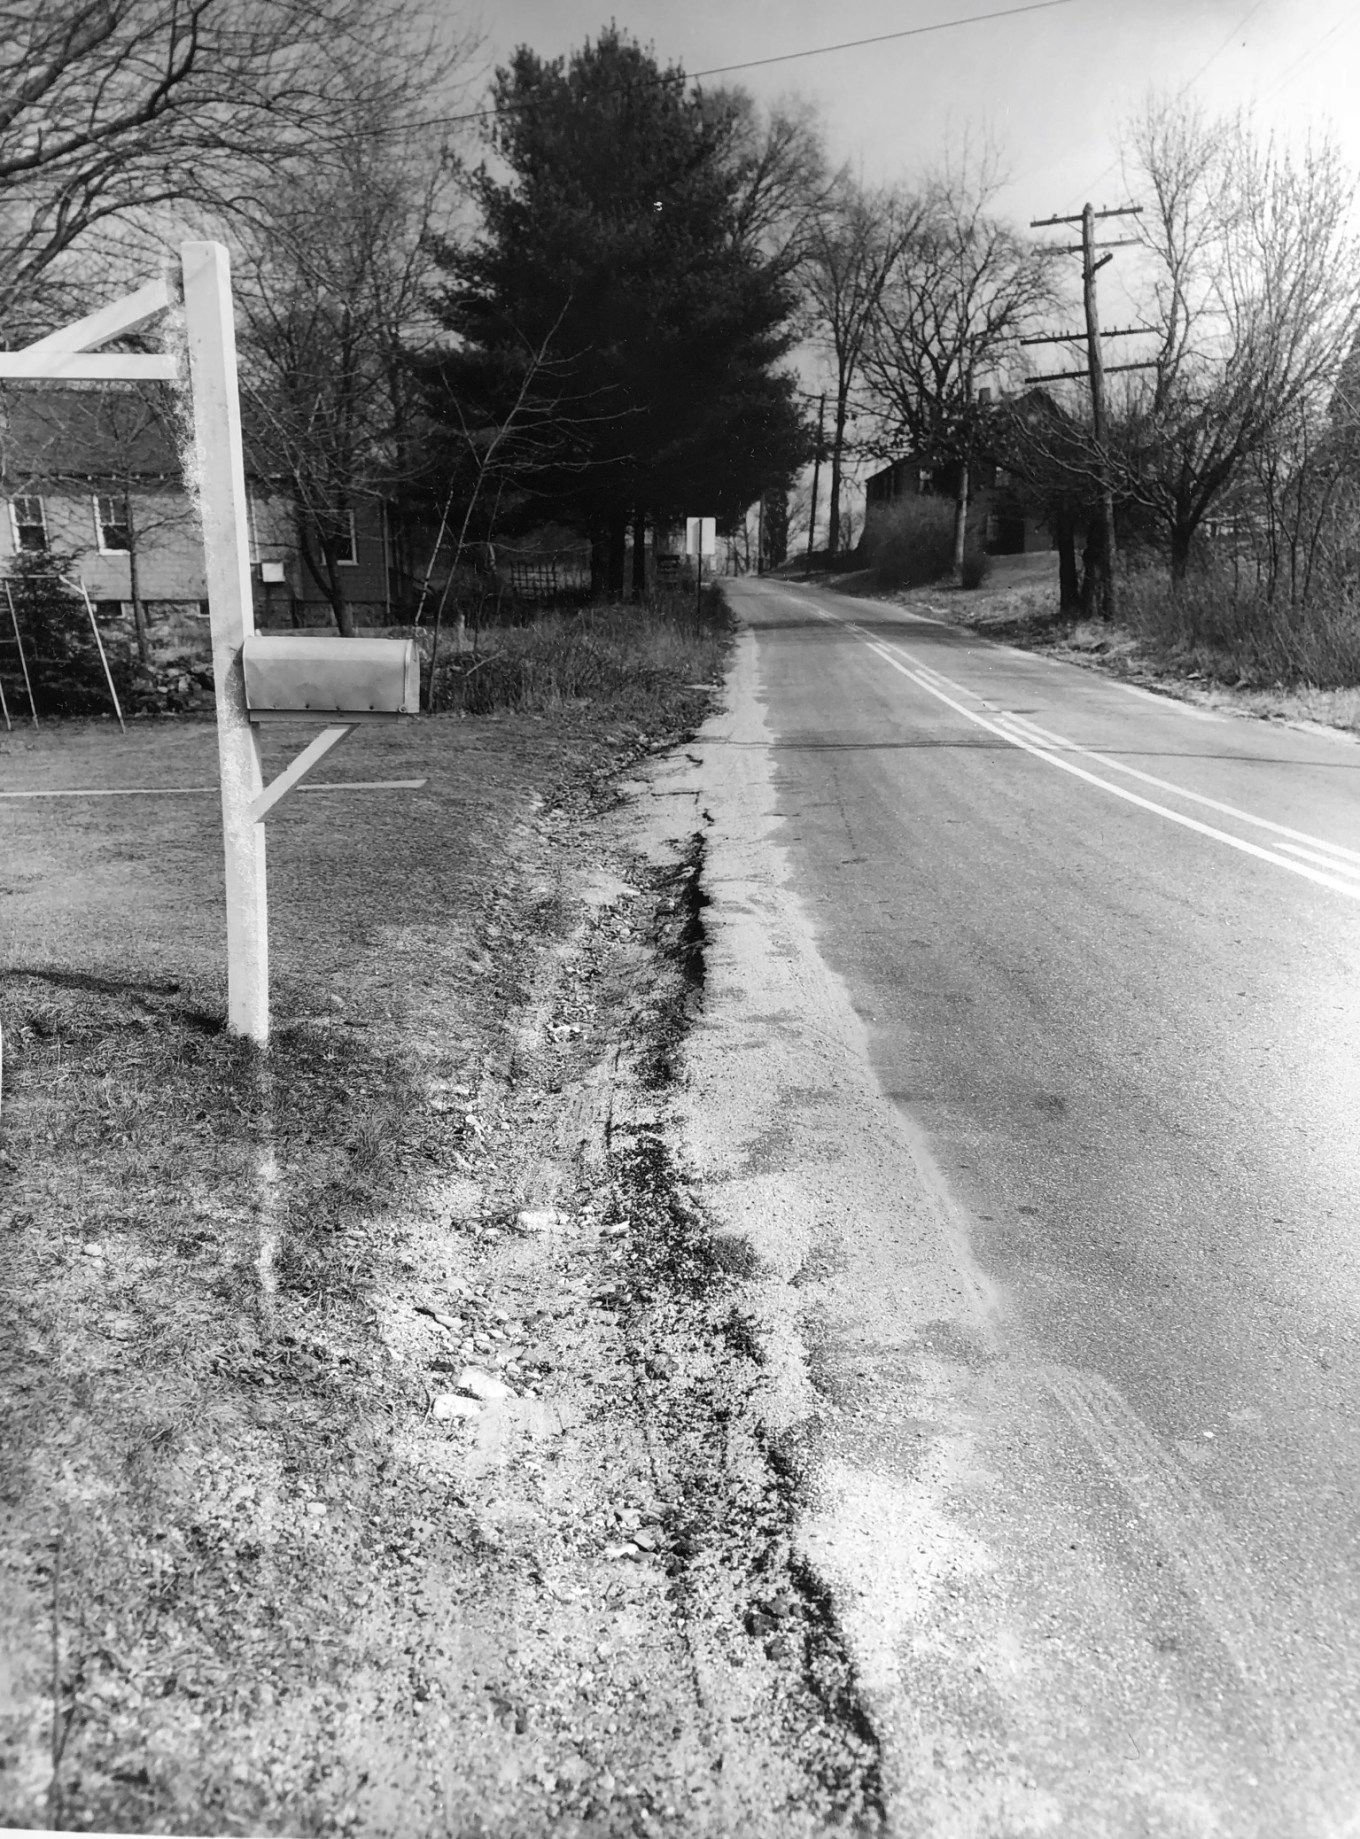 Francis Wyman Road looking uphill